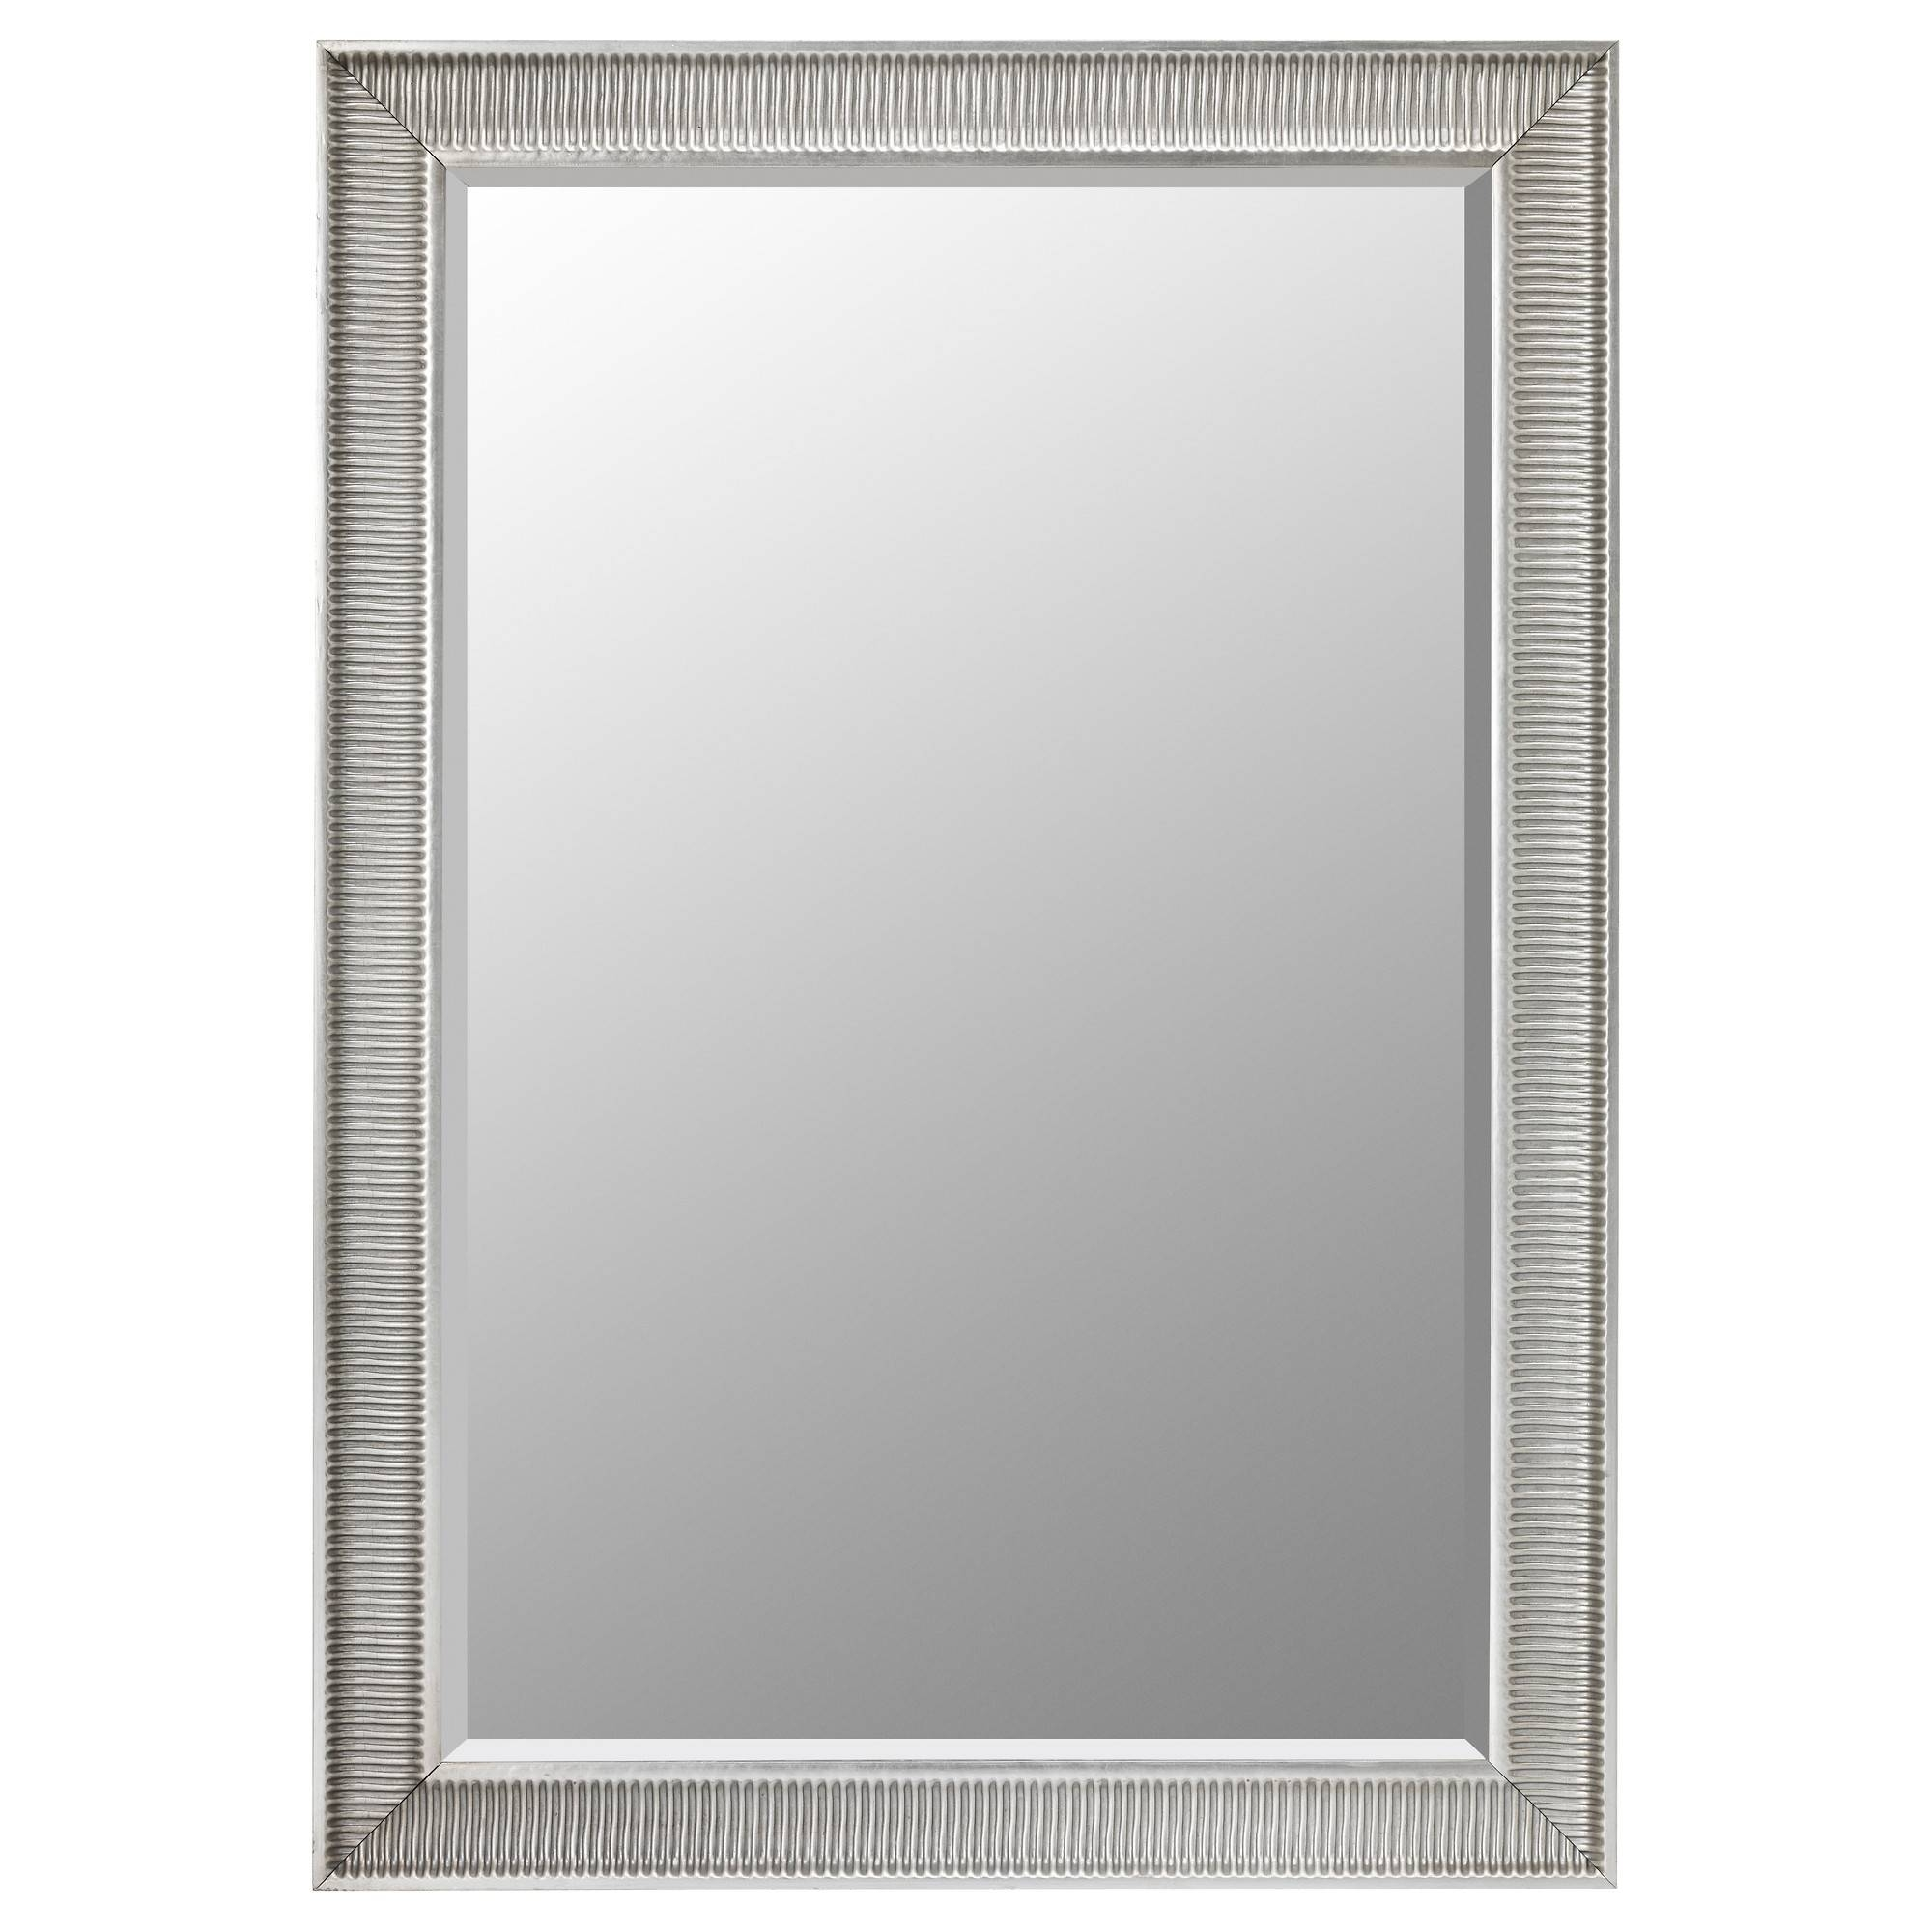 Mirrors - Free Standing Mirrors - Ikea regarding Silver Glitter Mirrors (Image 19 of 25)